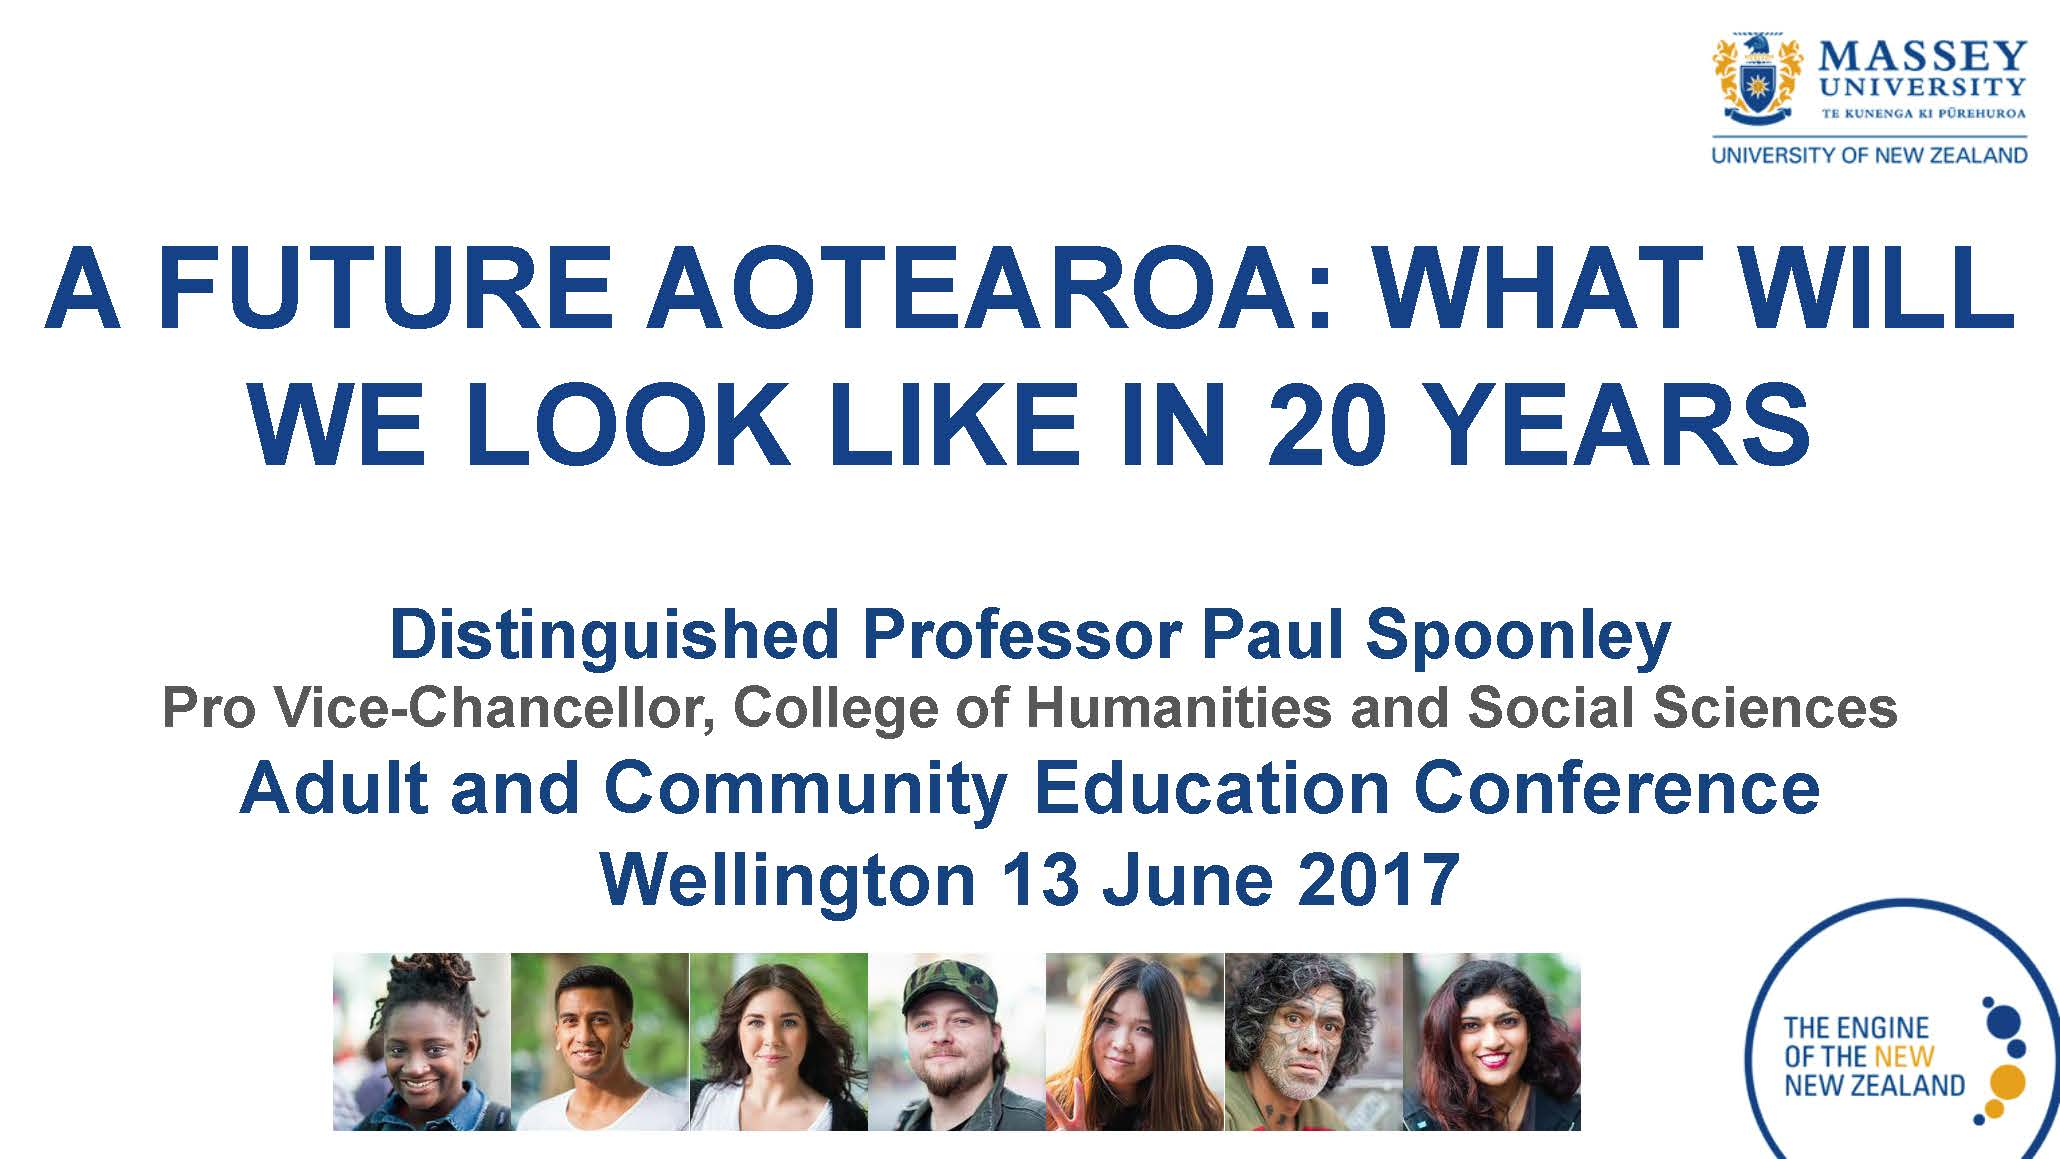 A Future Aotearoa- What will we look like in 20 years ACE Conference Presentation 2017